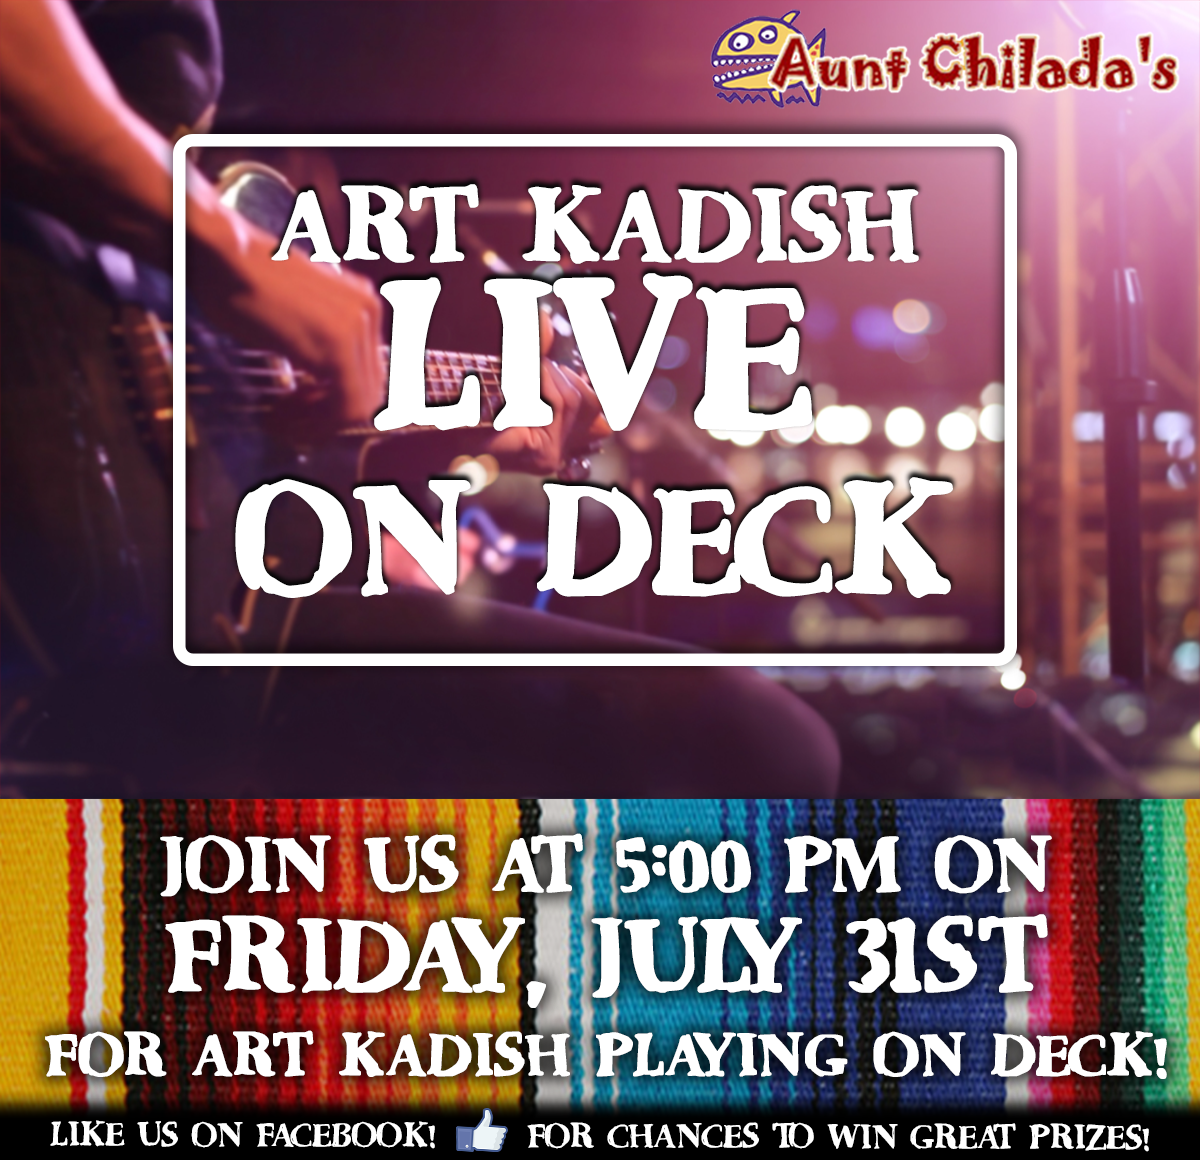 aunt chilada's Art Kadish Live On Deck. Join Us at 5:00PM on Friday, July 31st for Art Kadish Playing On Deck! like us on facebook! for chances to win great prizes!